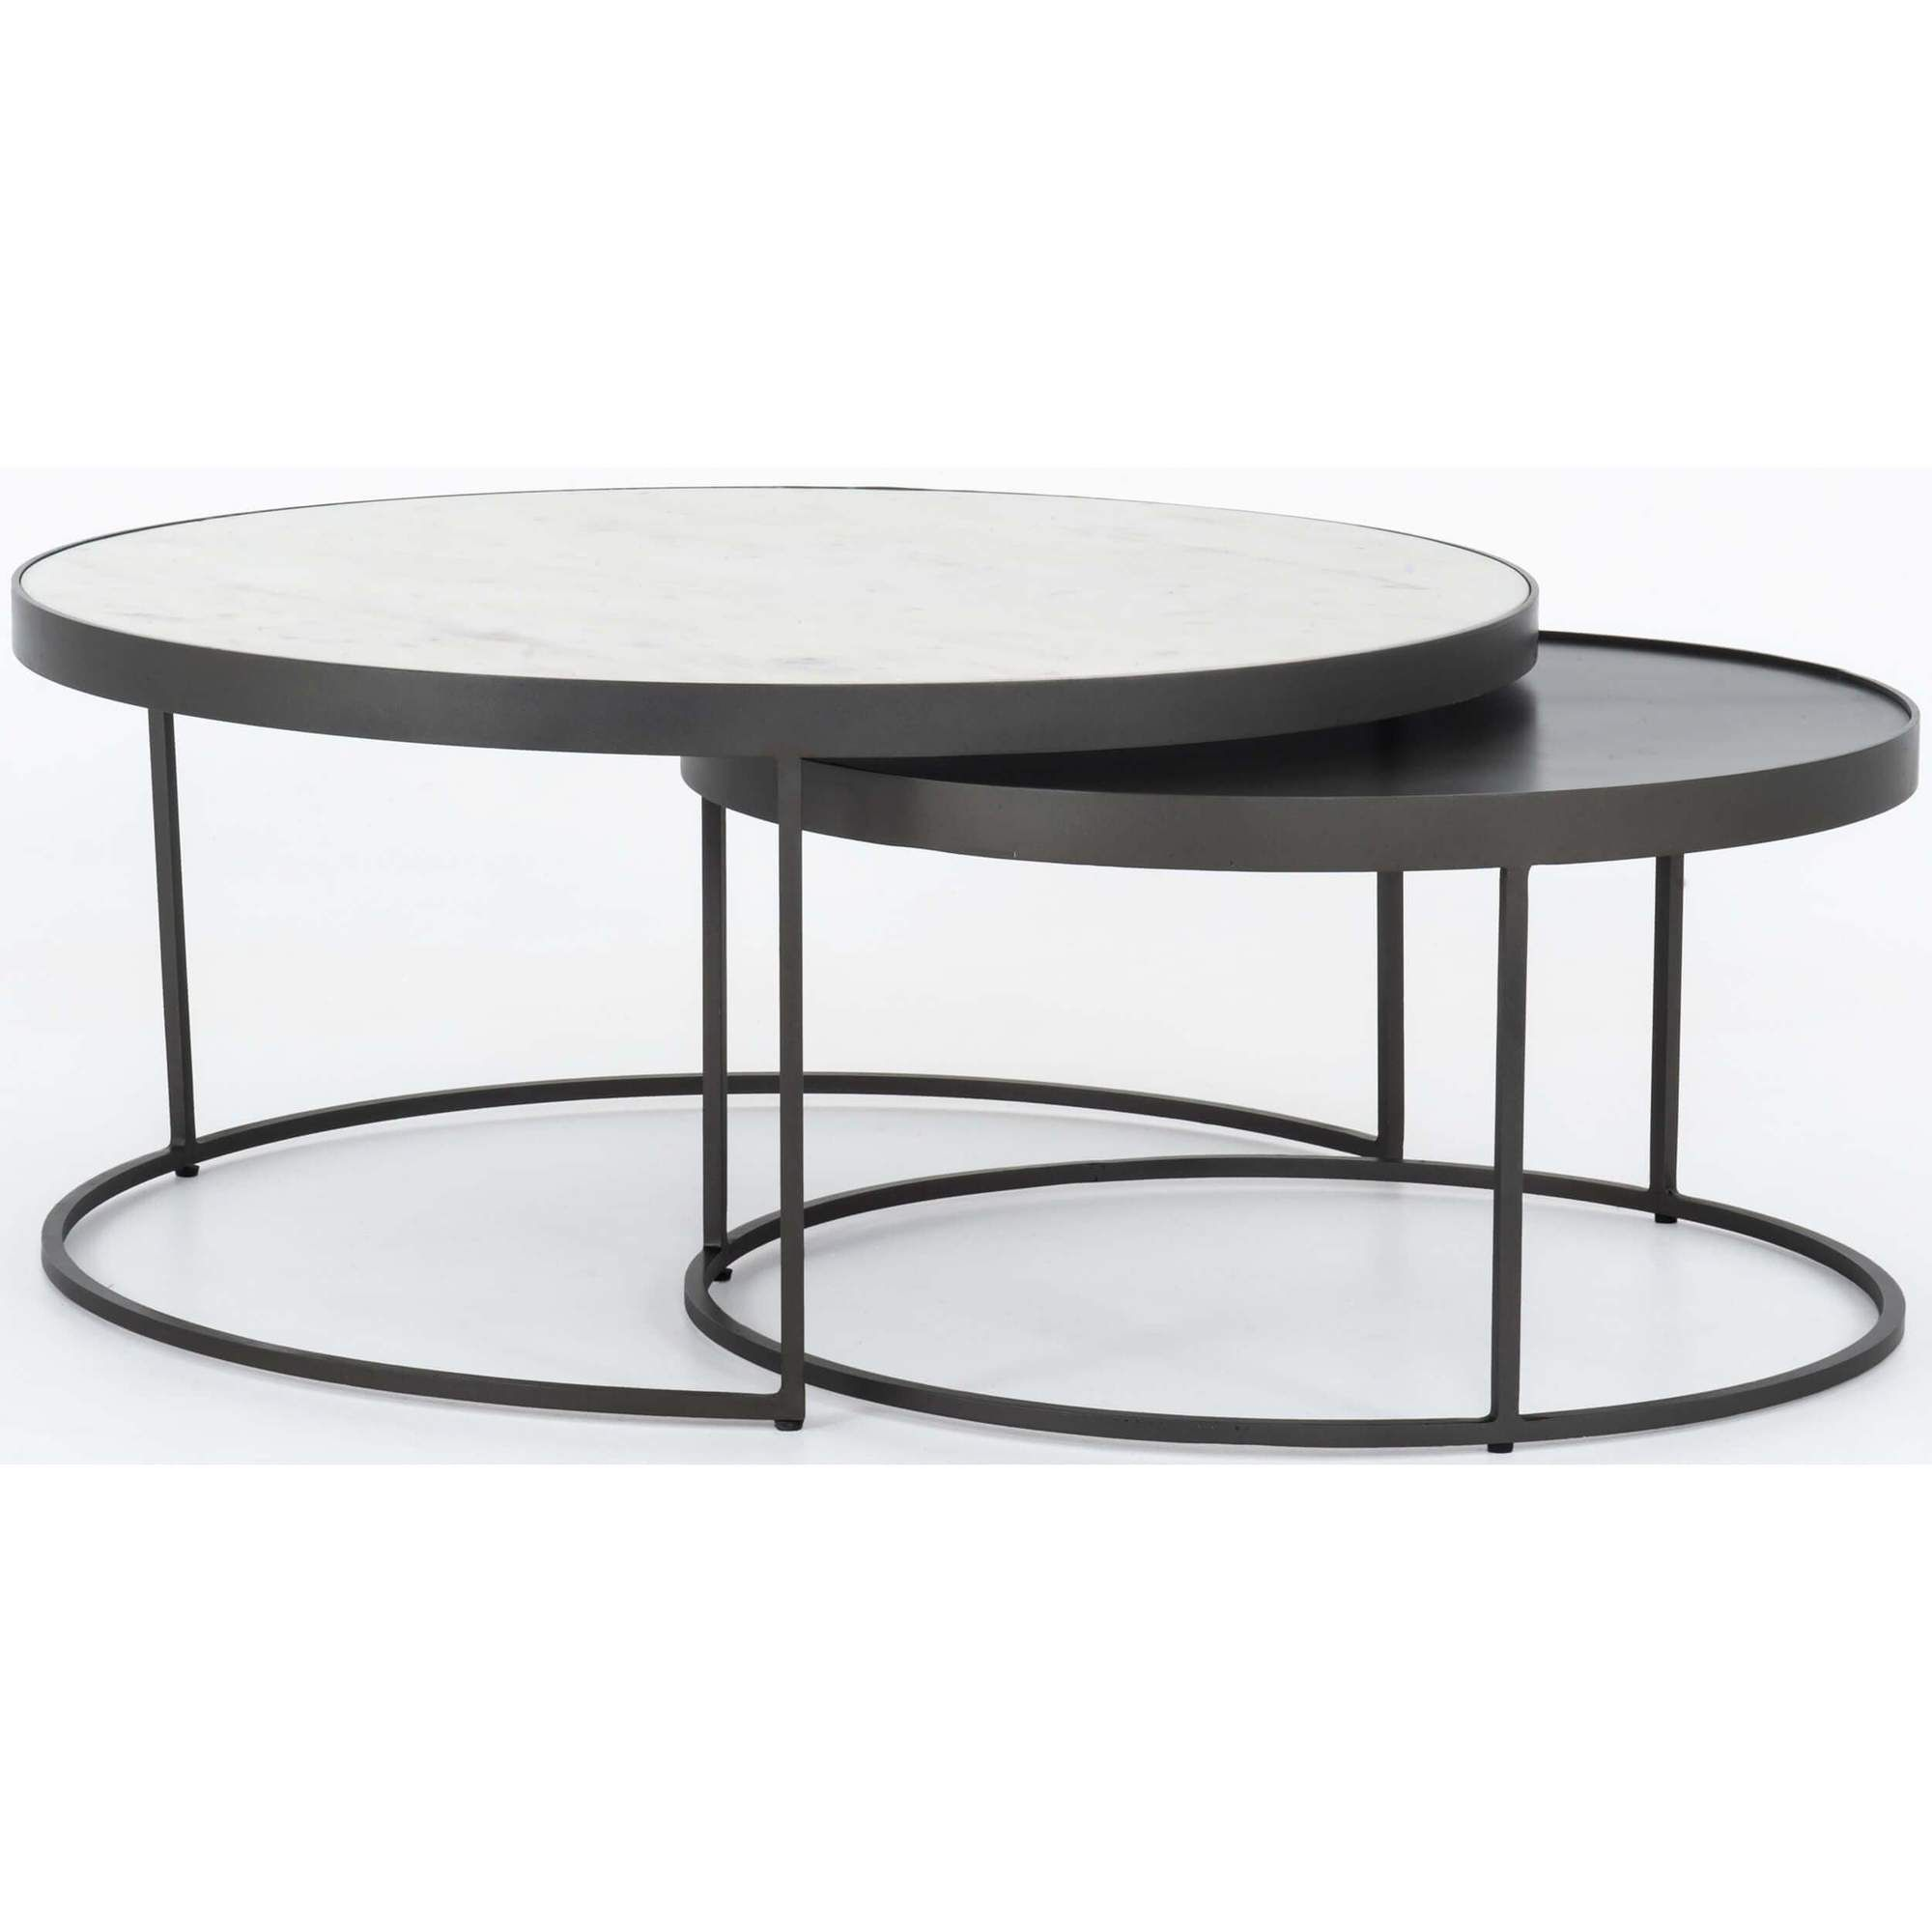 Evelyn Round Nesting Coffee Table In 2021 Nesting Coffee Tables Round Nesting Coffee Tables Round Coffee Table Modern [ 2000 x 2000 Pixel ]